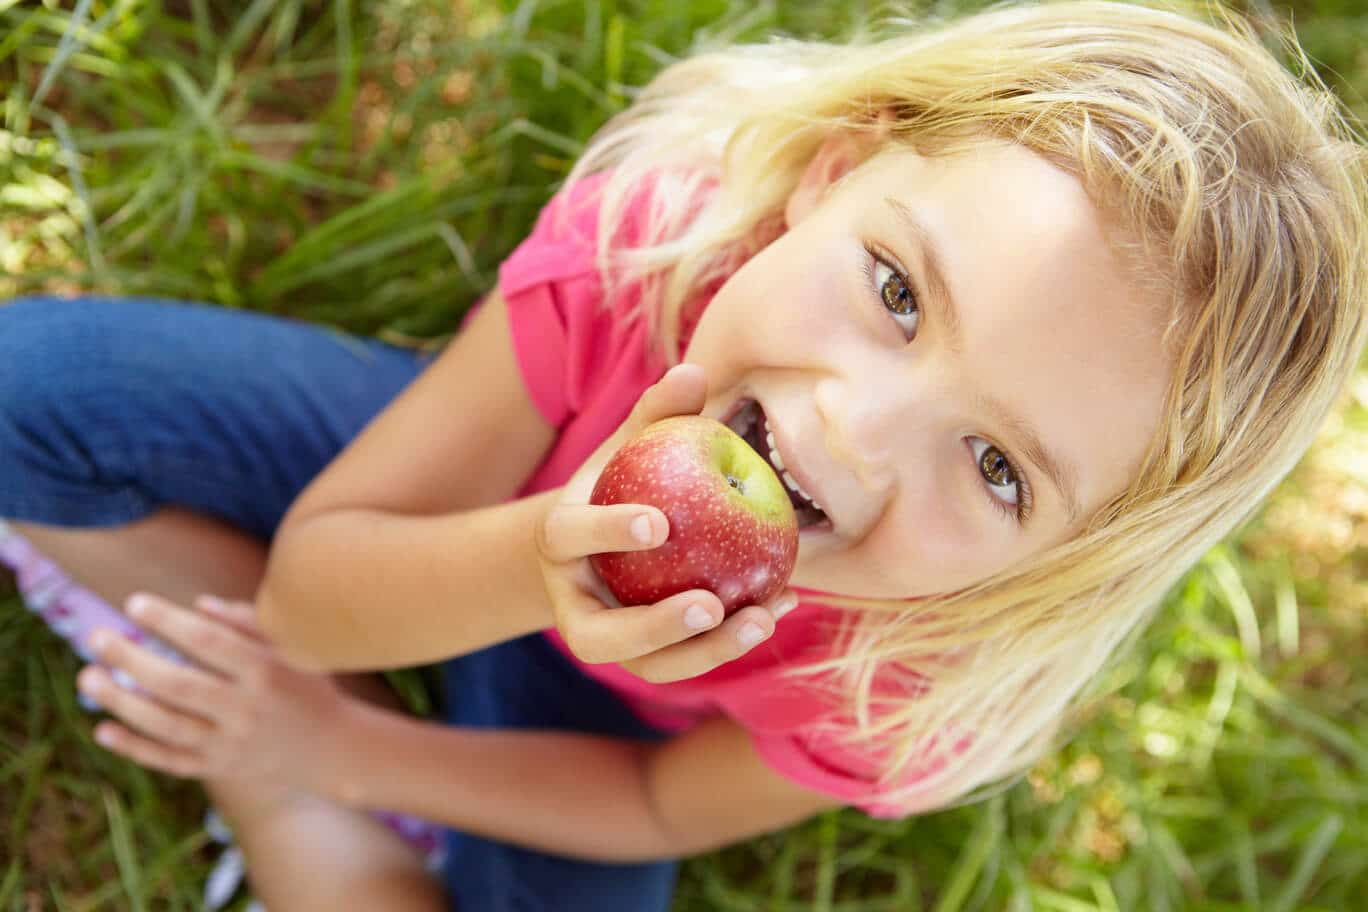 Girl eating an apple while looking up at the camera